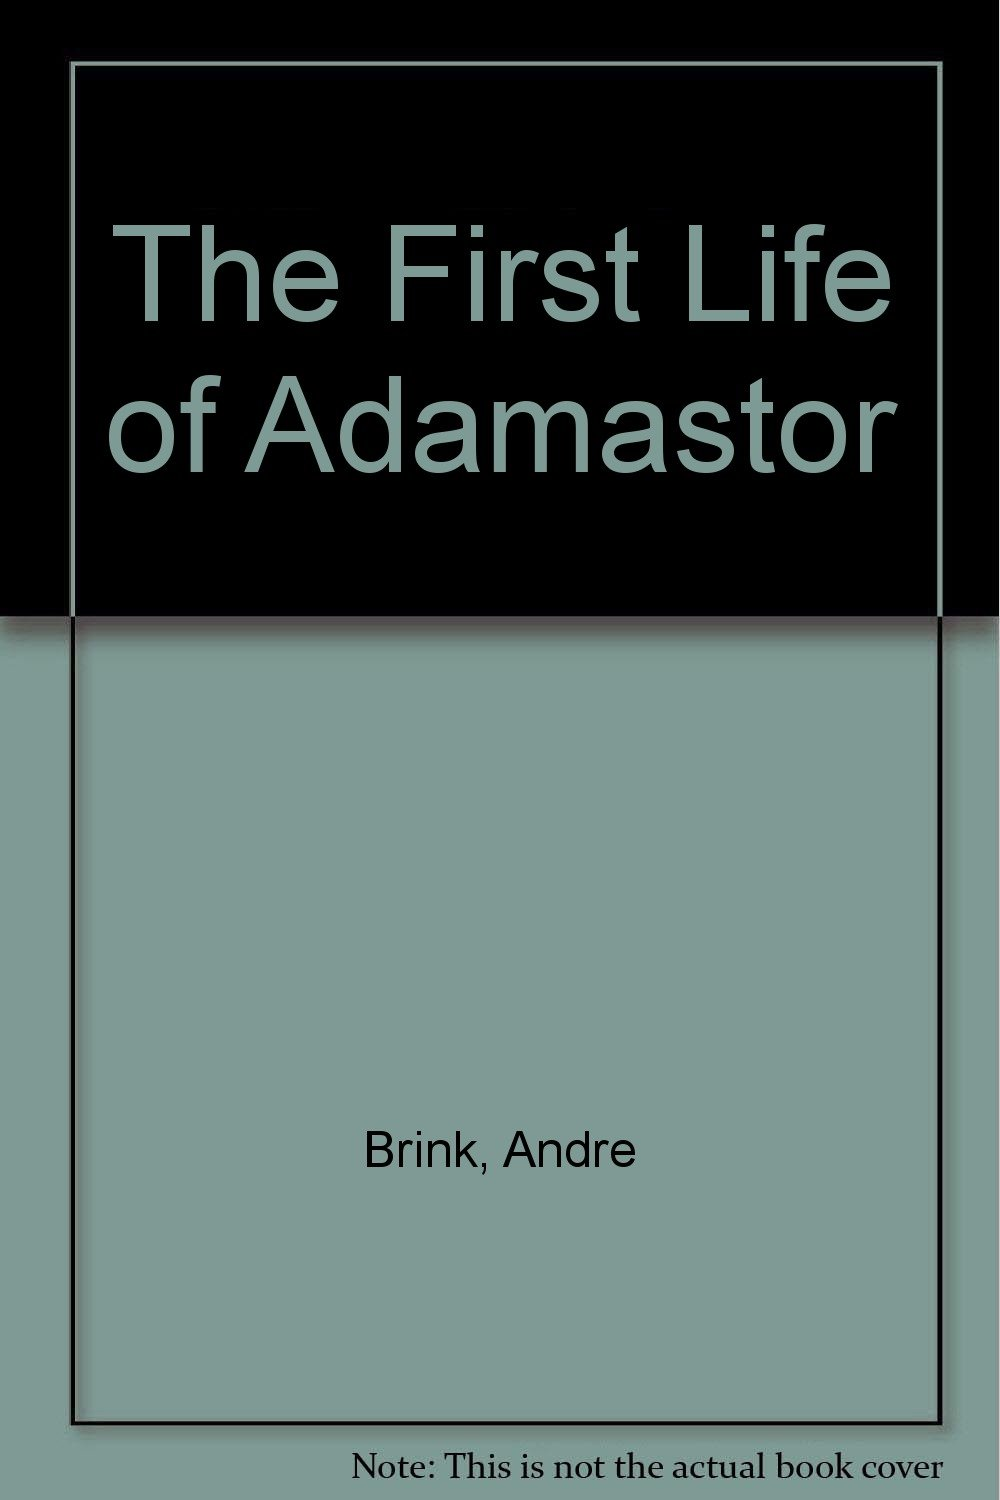 The First Life of Adamastor